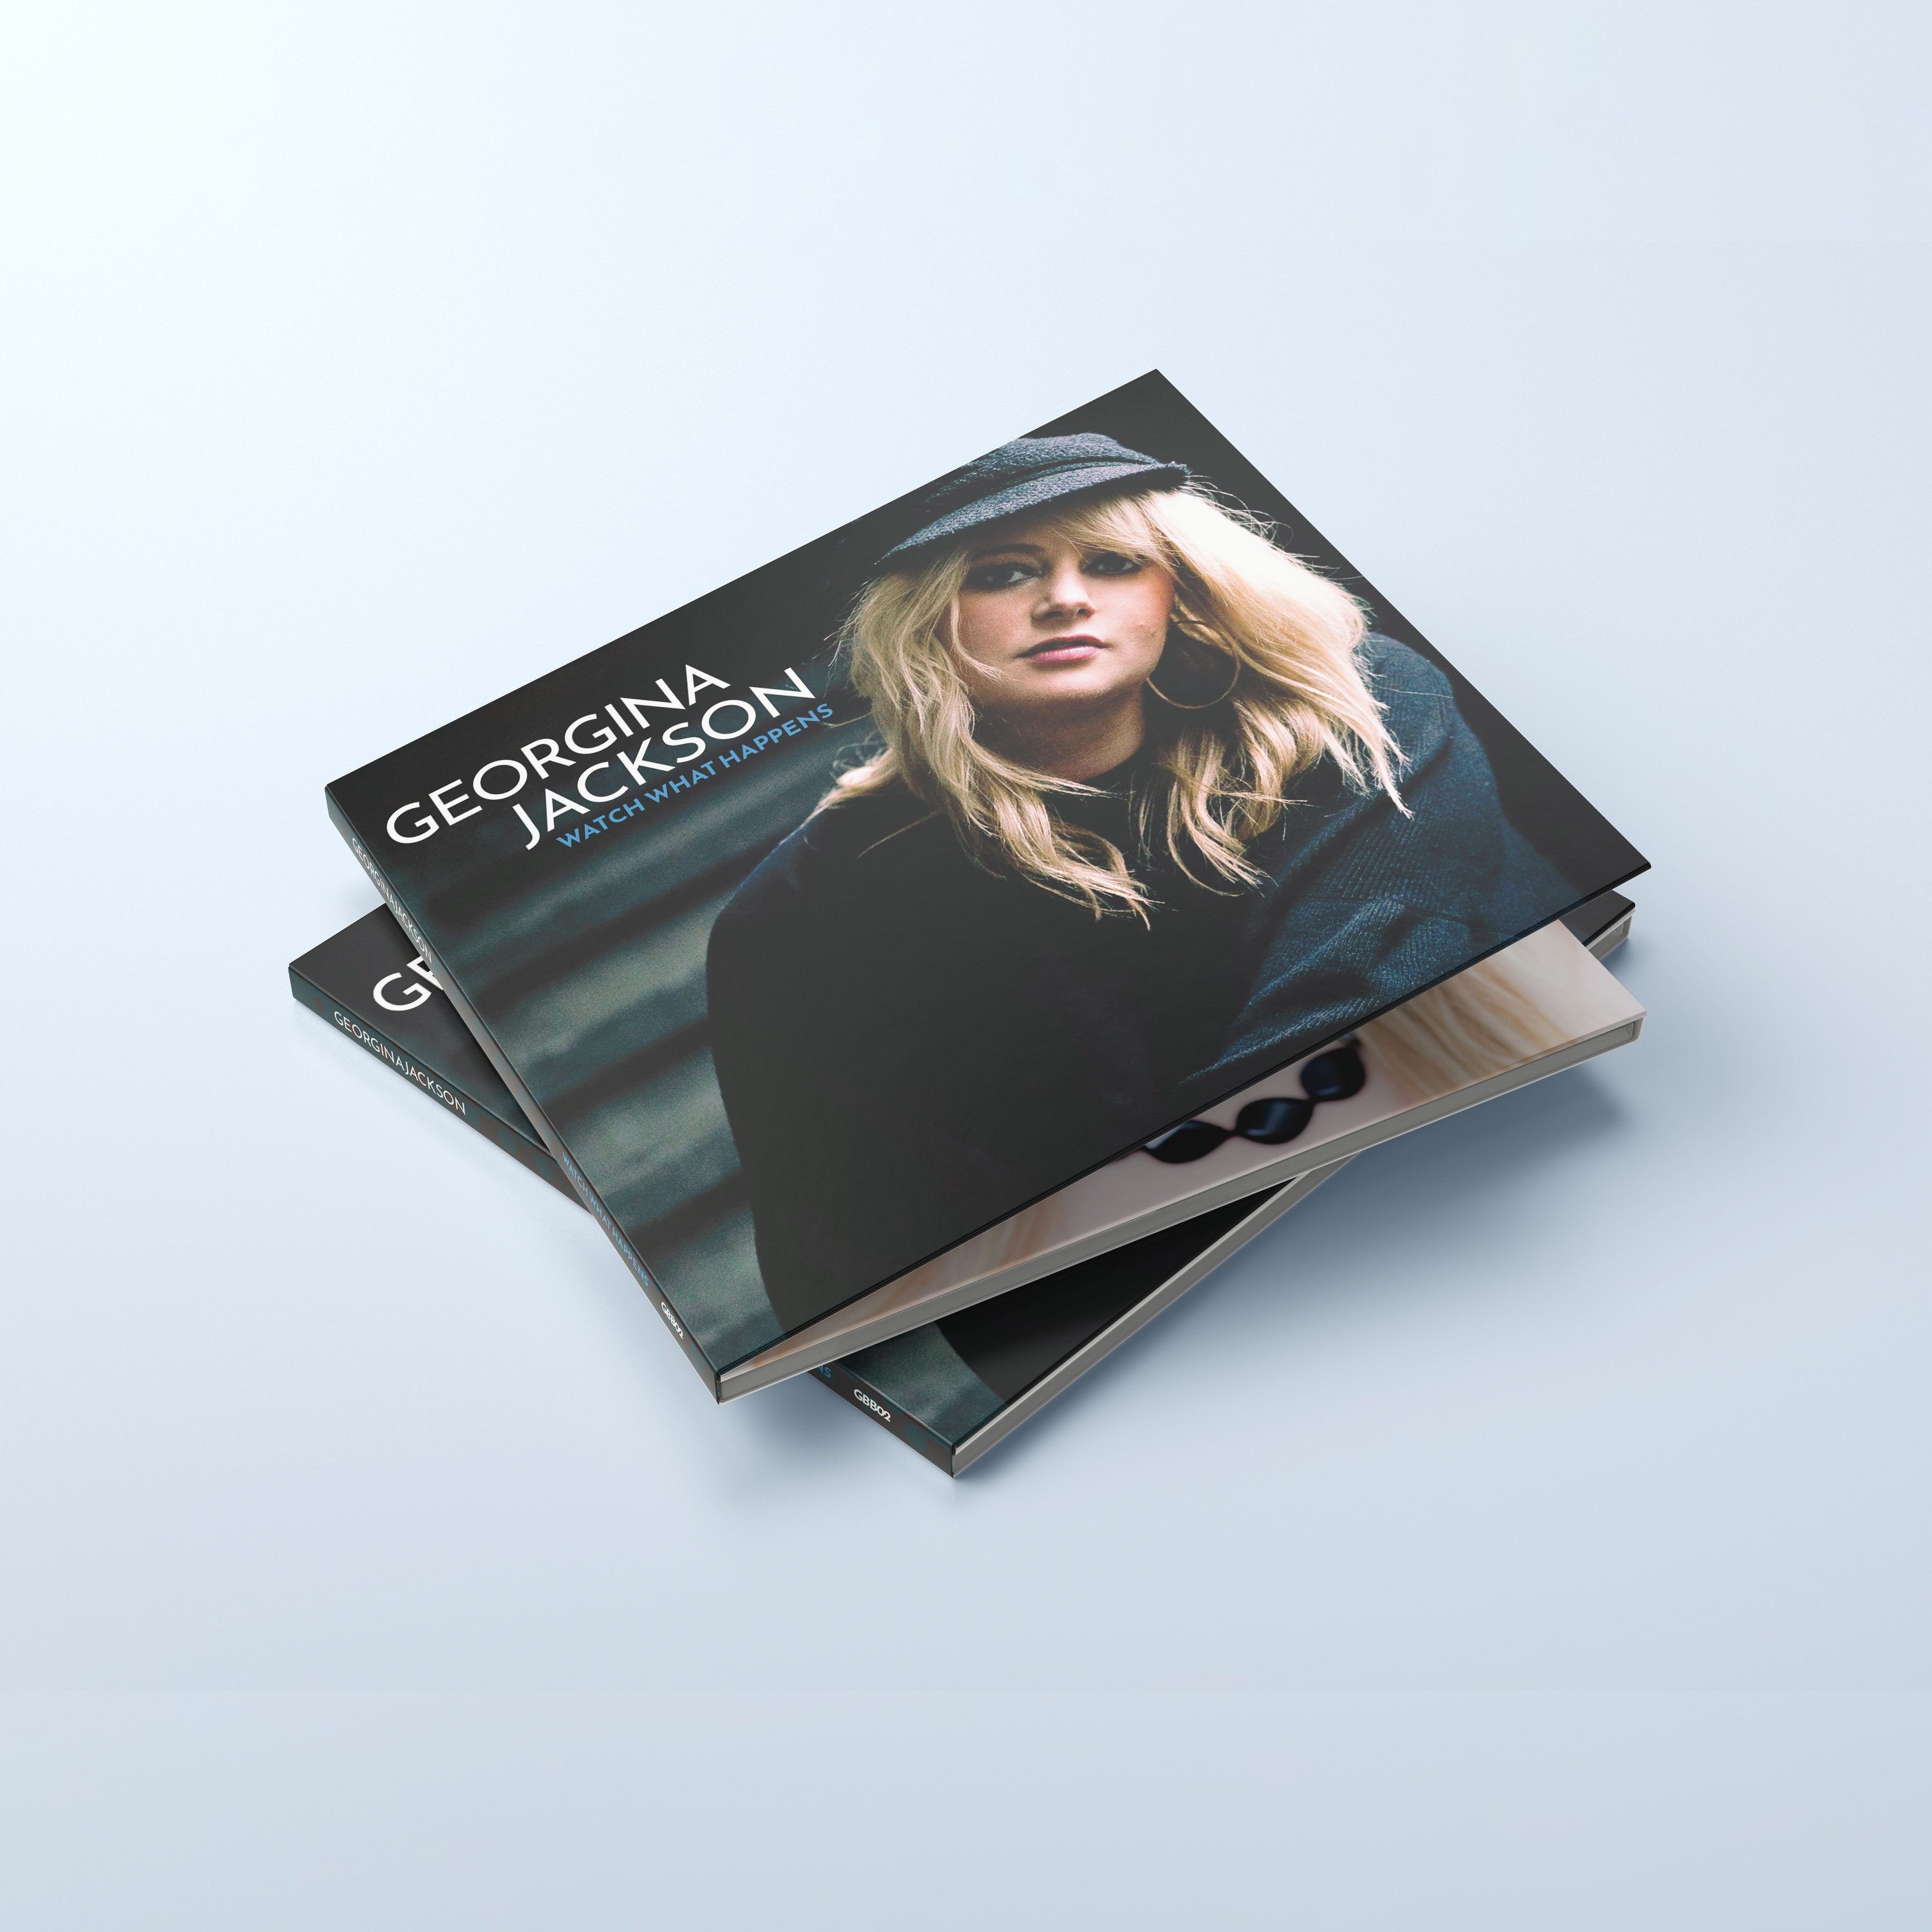 CD Packaging Design - Georgina Jackson | Wes Butler Graphic Design Corby